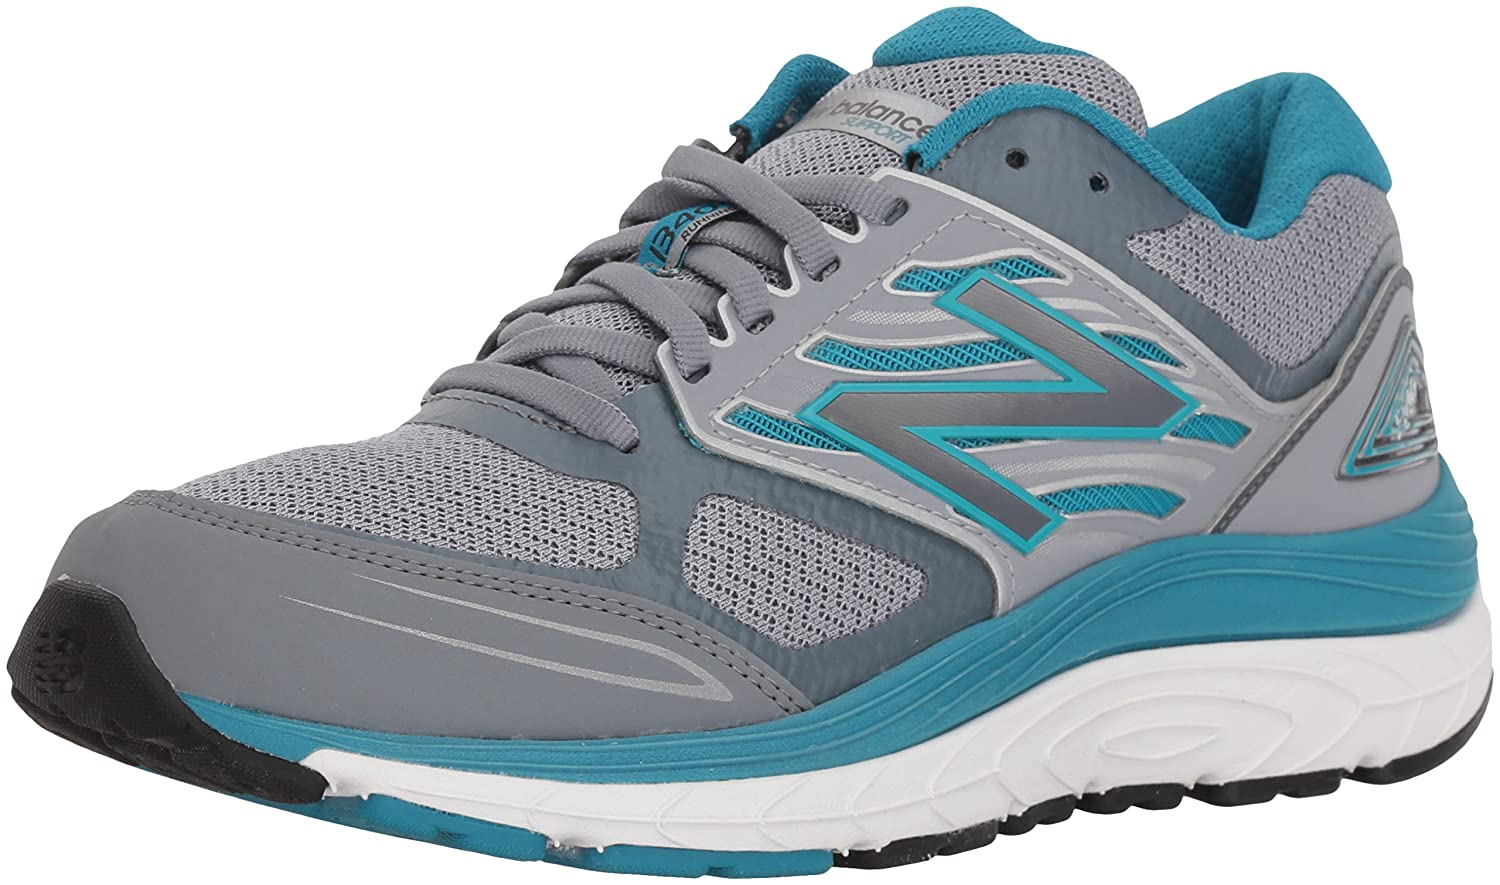 New Balance Women's 1340v3 Running Shoe B01N0GKJR3 8.5 D US|Dark Grey